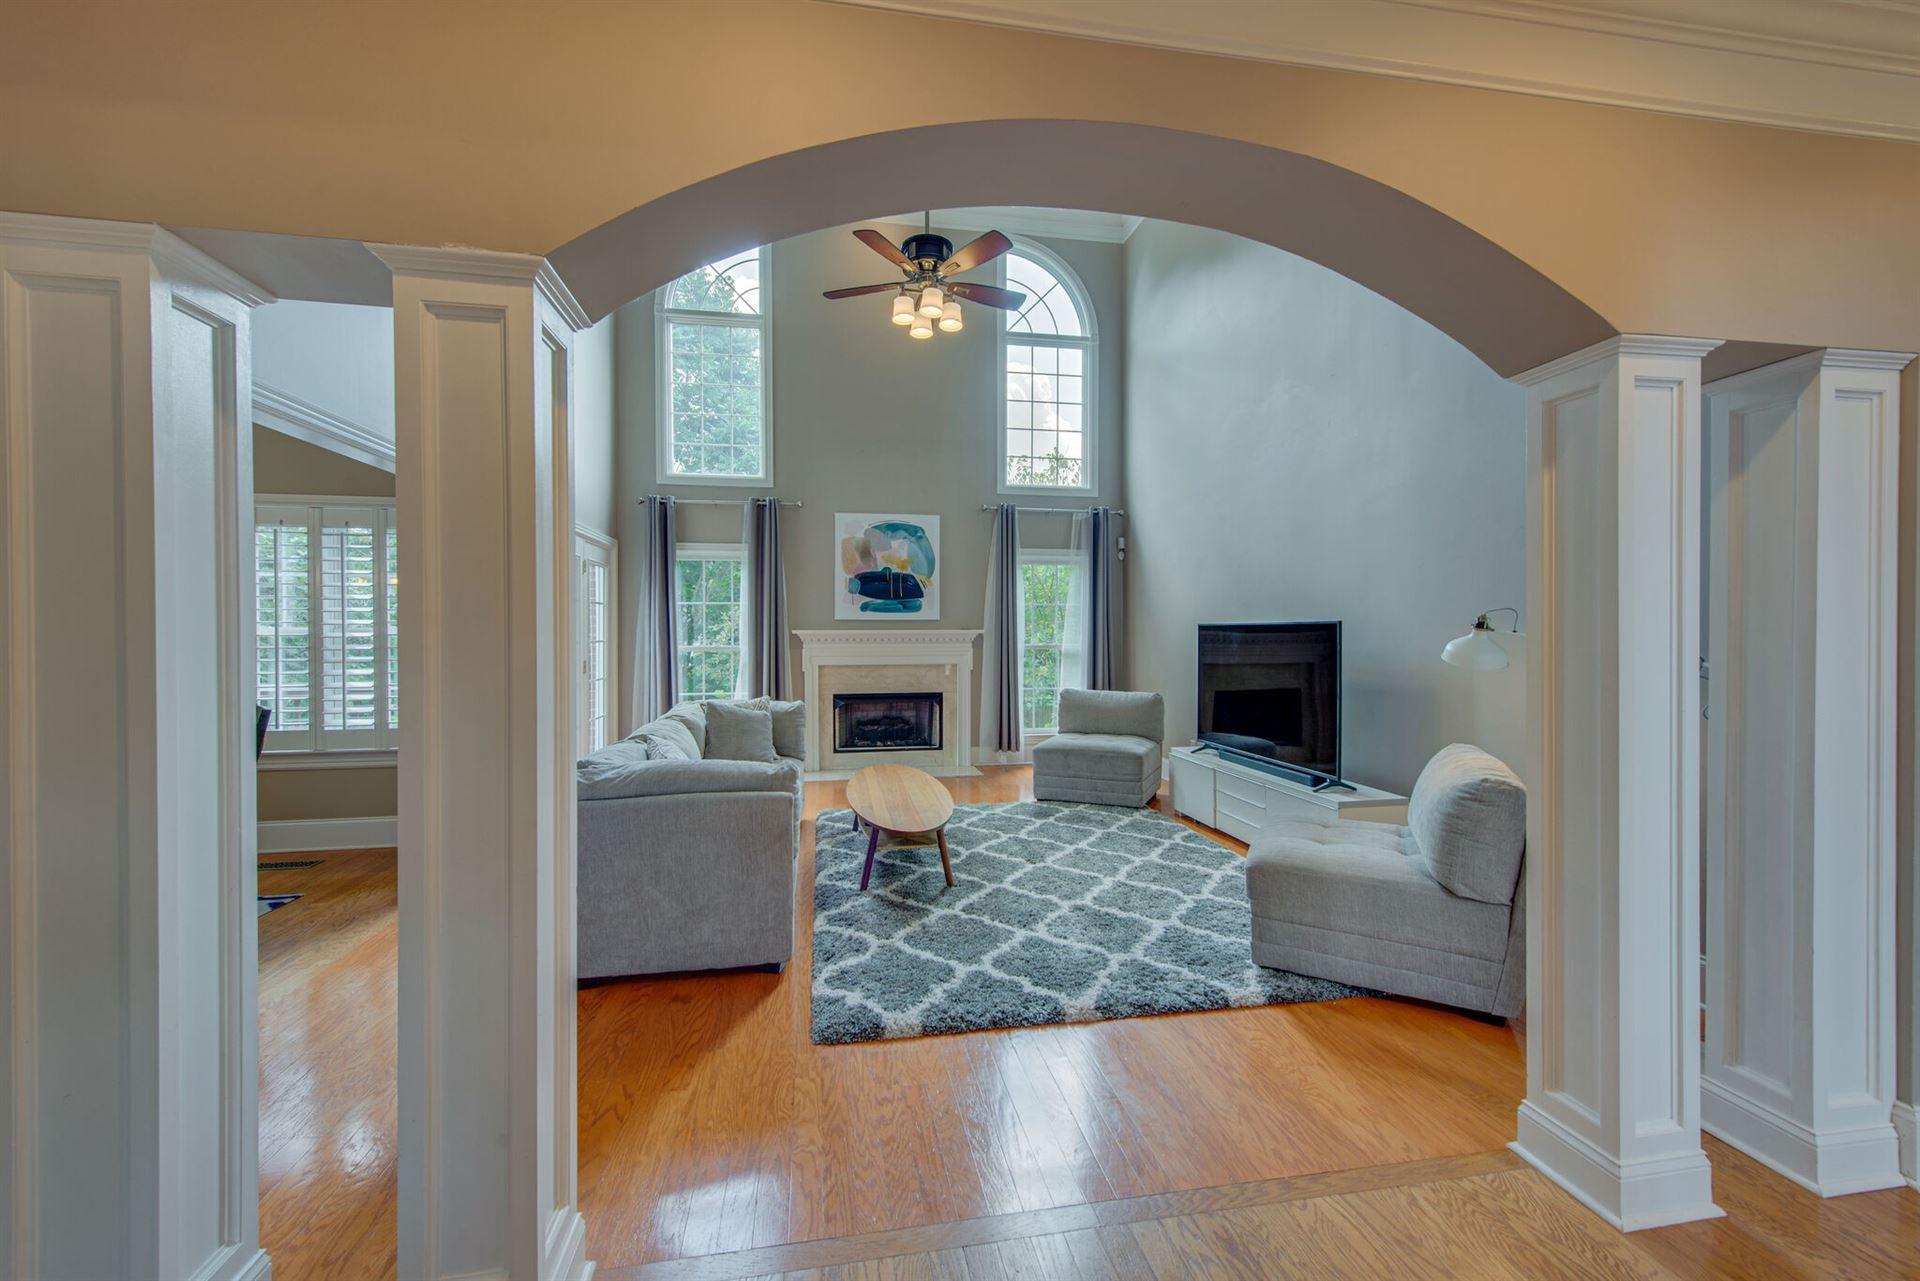 Photo of 405 Enclave Ct, Brentwood, TN 37027 (MLS # 2291728)